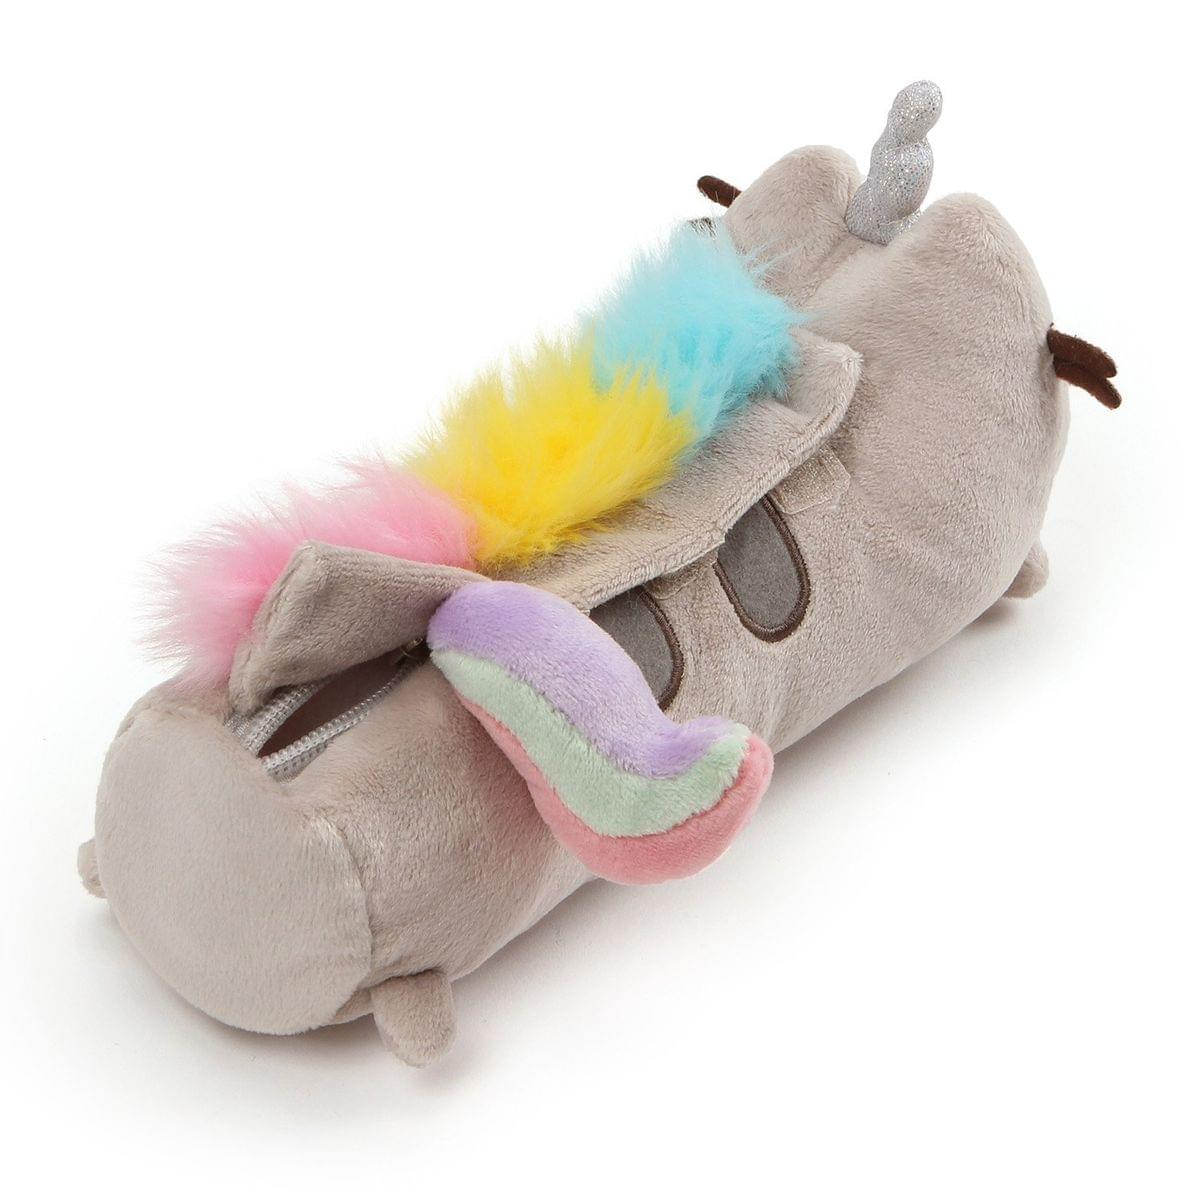 "Pusheen the Cat Pusheenicorn 8.5"" Plush Accessory Case"